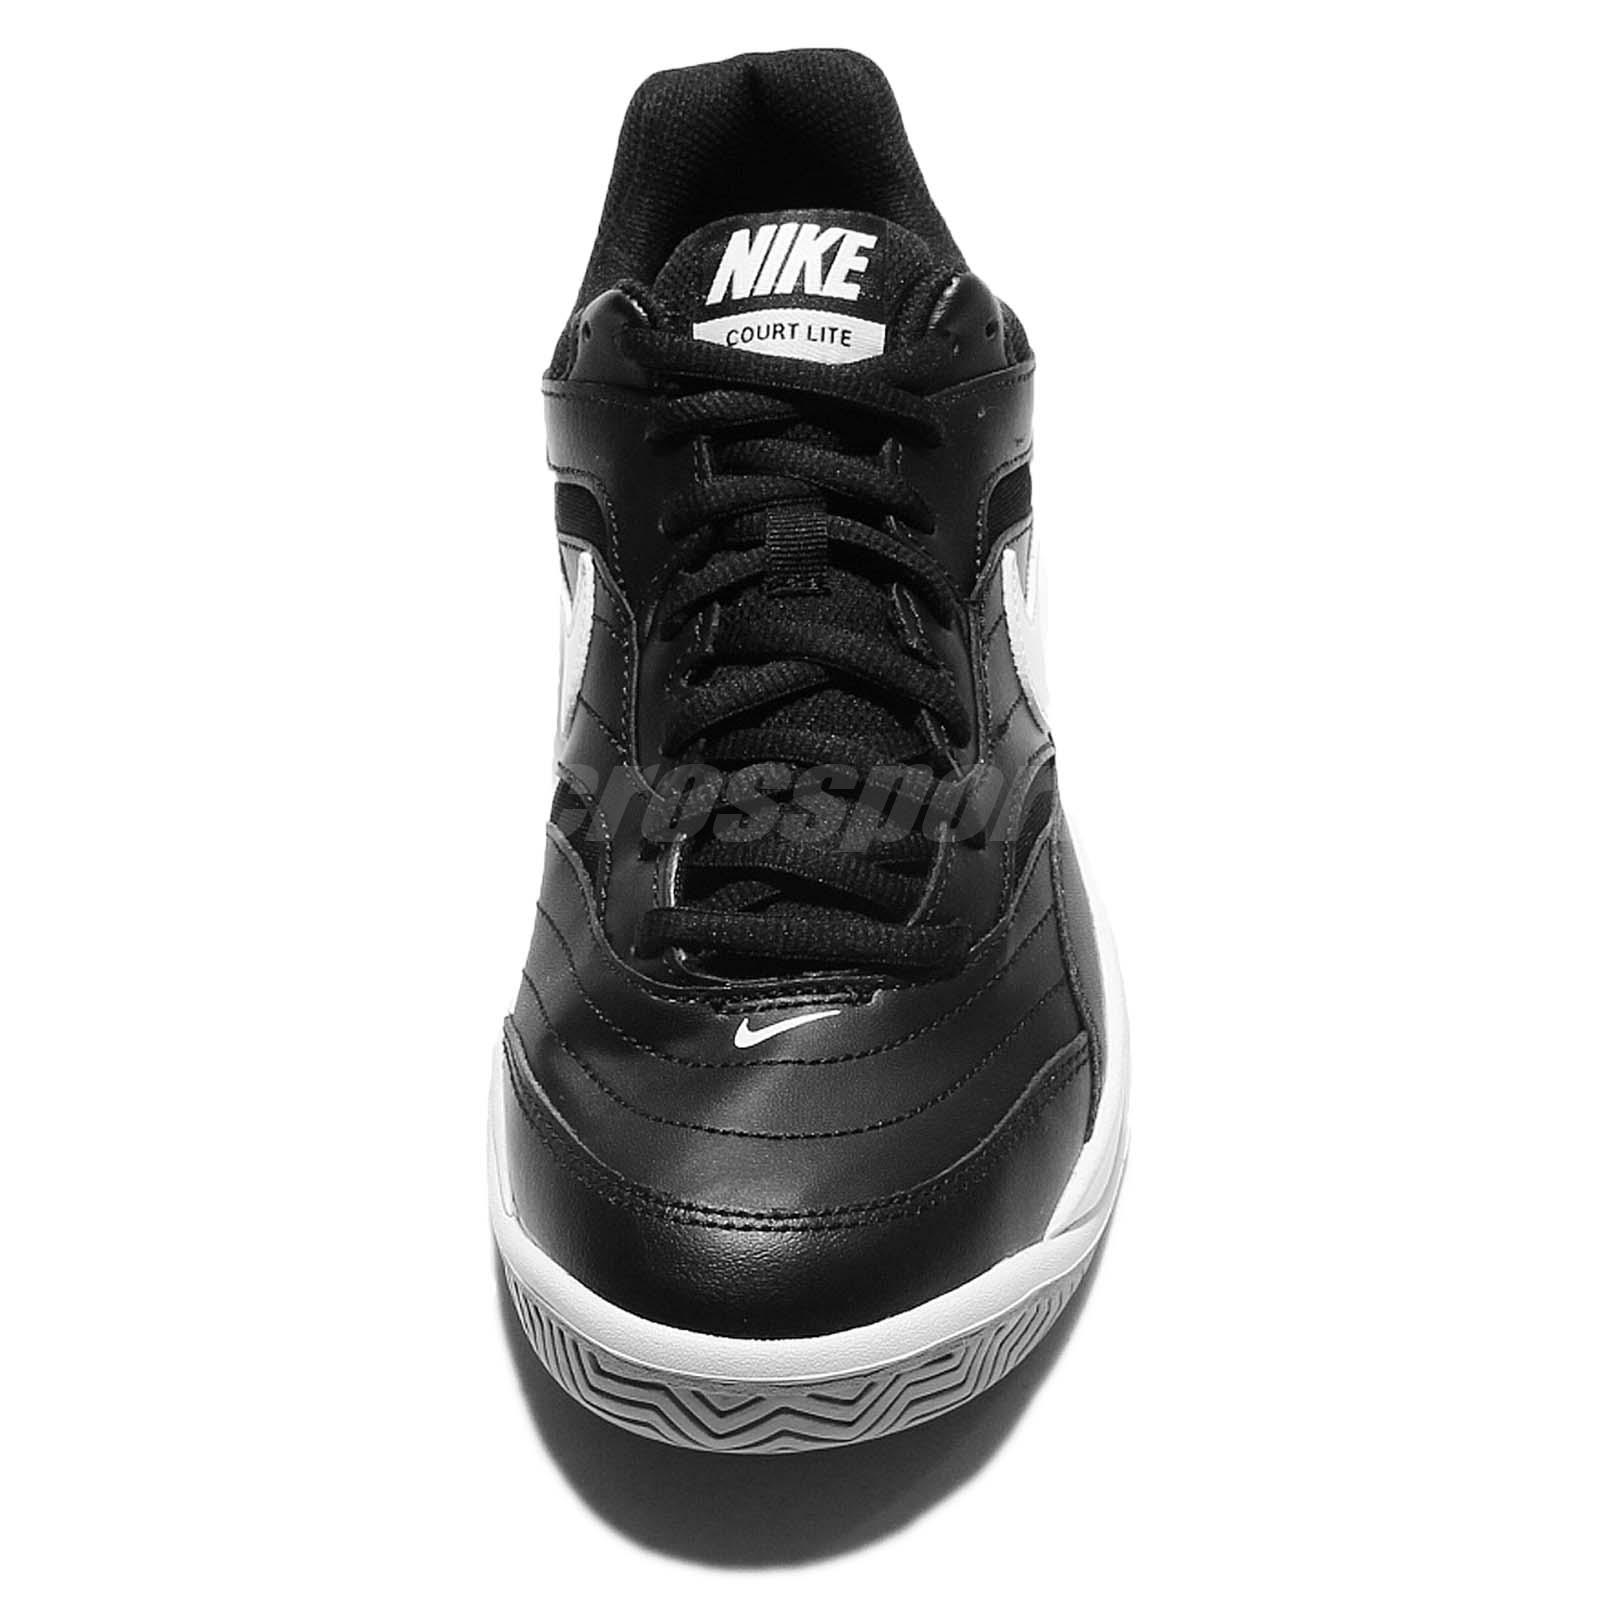 super popular f17bd 85374 Nike Court Lite Black White Mens Tennis Shoes Sneakers Trainers ...